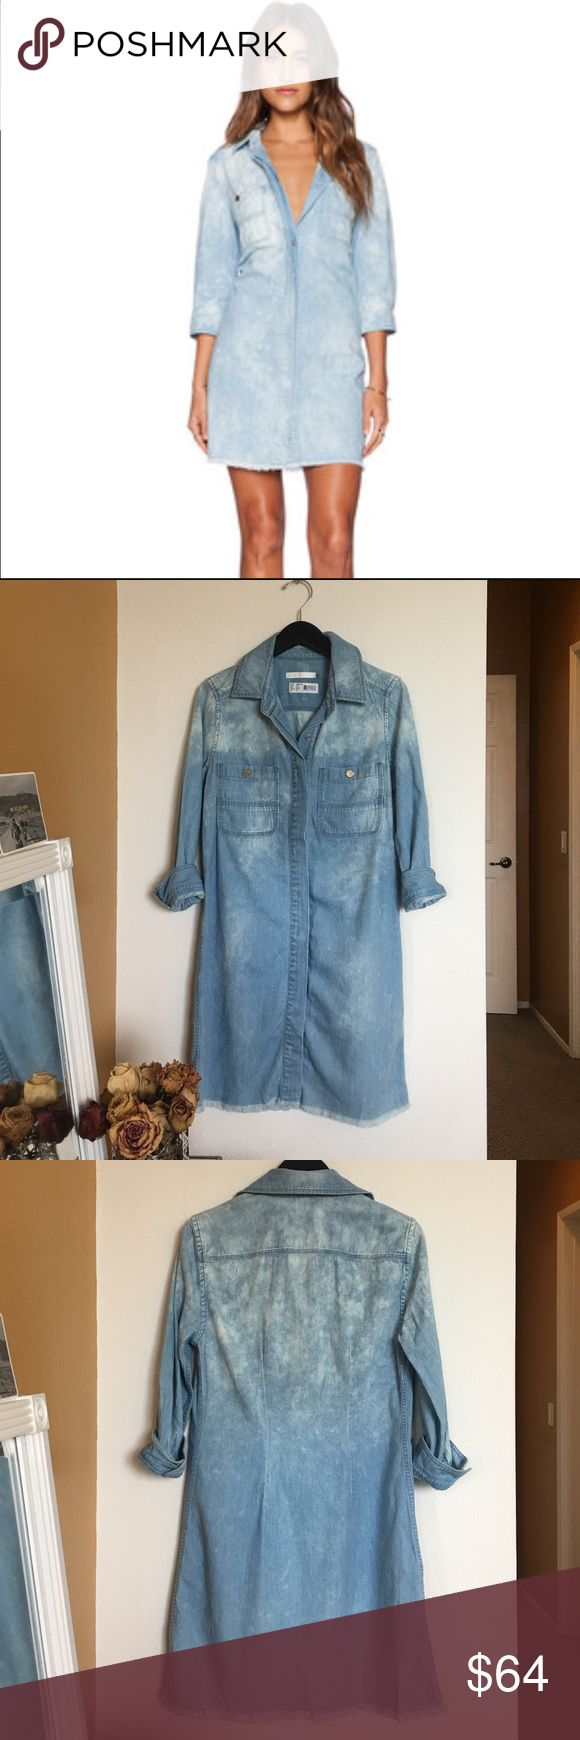 NWOT Bleached Denim Dress 7 for All Mankind denim dress - light blue wash with bleaching all over and raw hem. Great transitional dress for Spring season. You can wear buttoned as a dress or opened up as a duster. Looks amazing paired with tee and white denim! Never worn. 7 For All Mankind Dresses